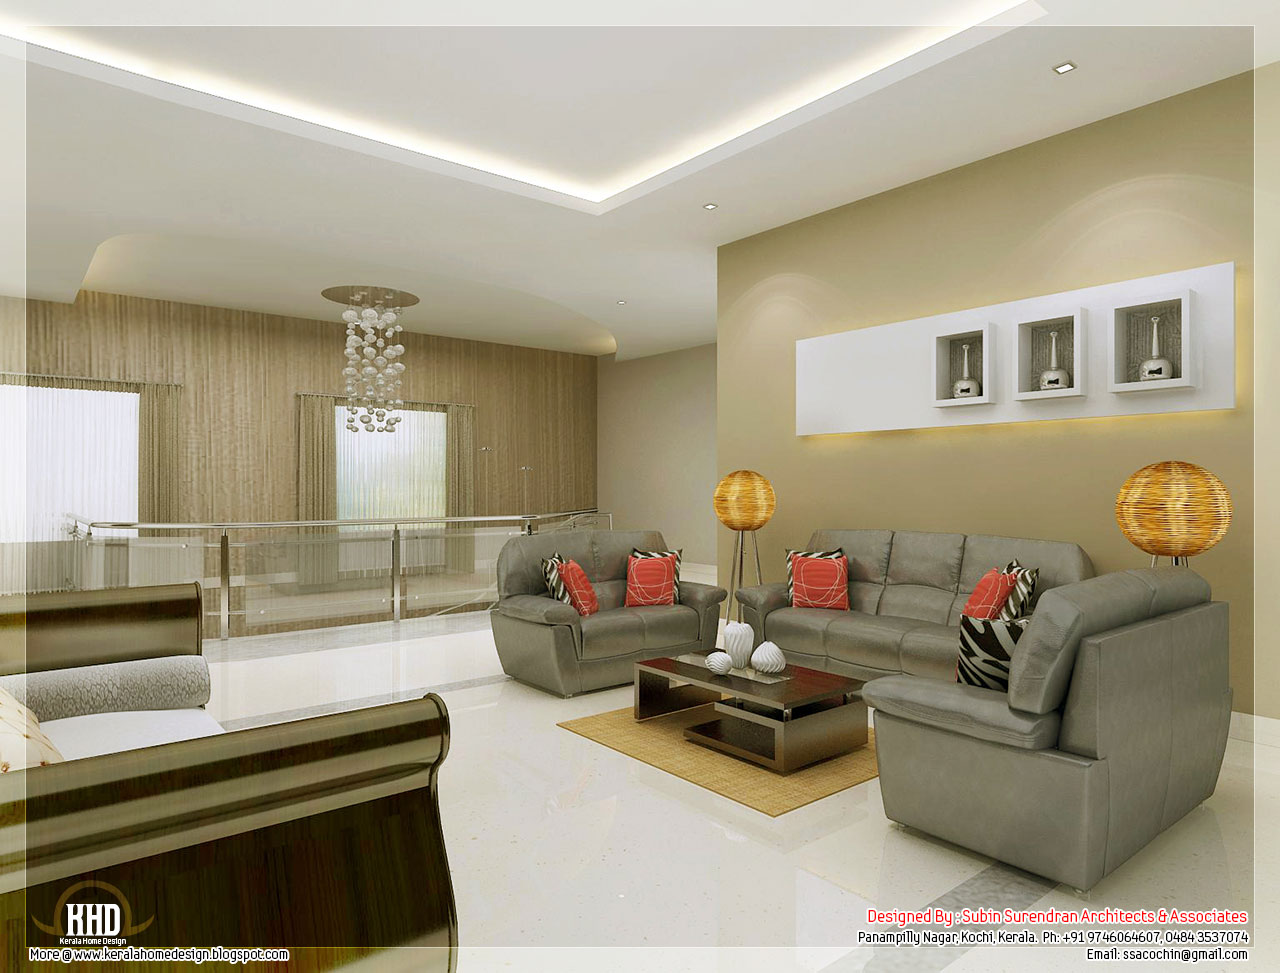 Awesome 3d interior renderings kerala home design and for Interior design ideas living room indian style